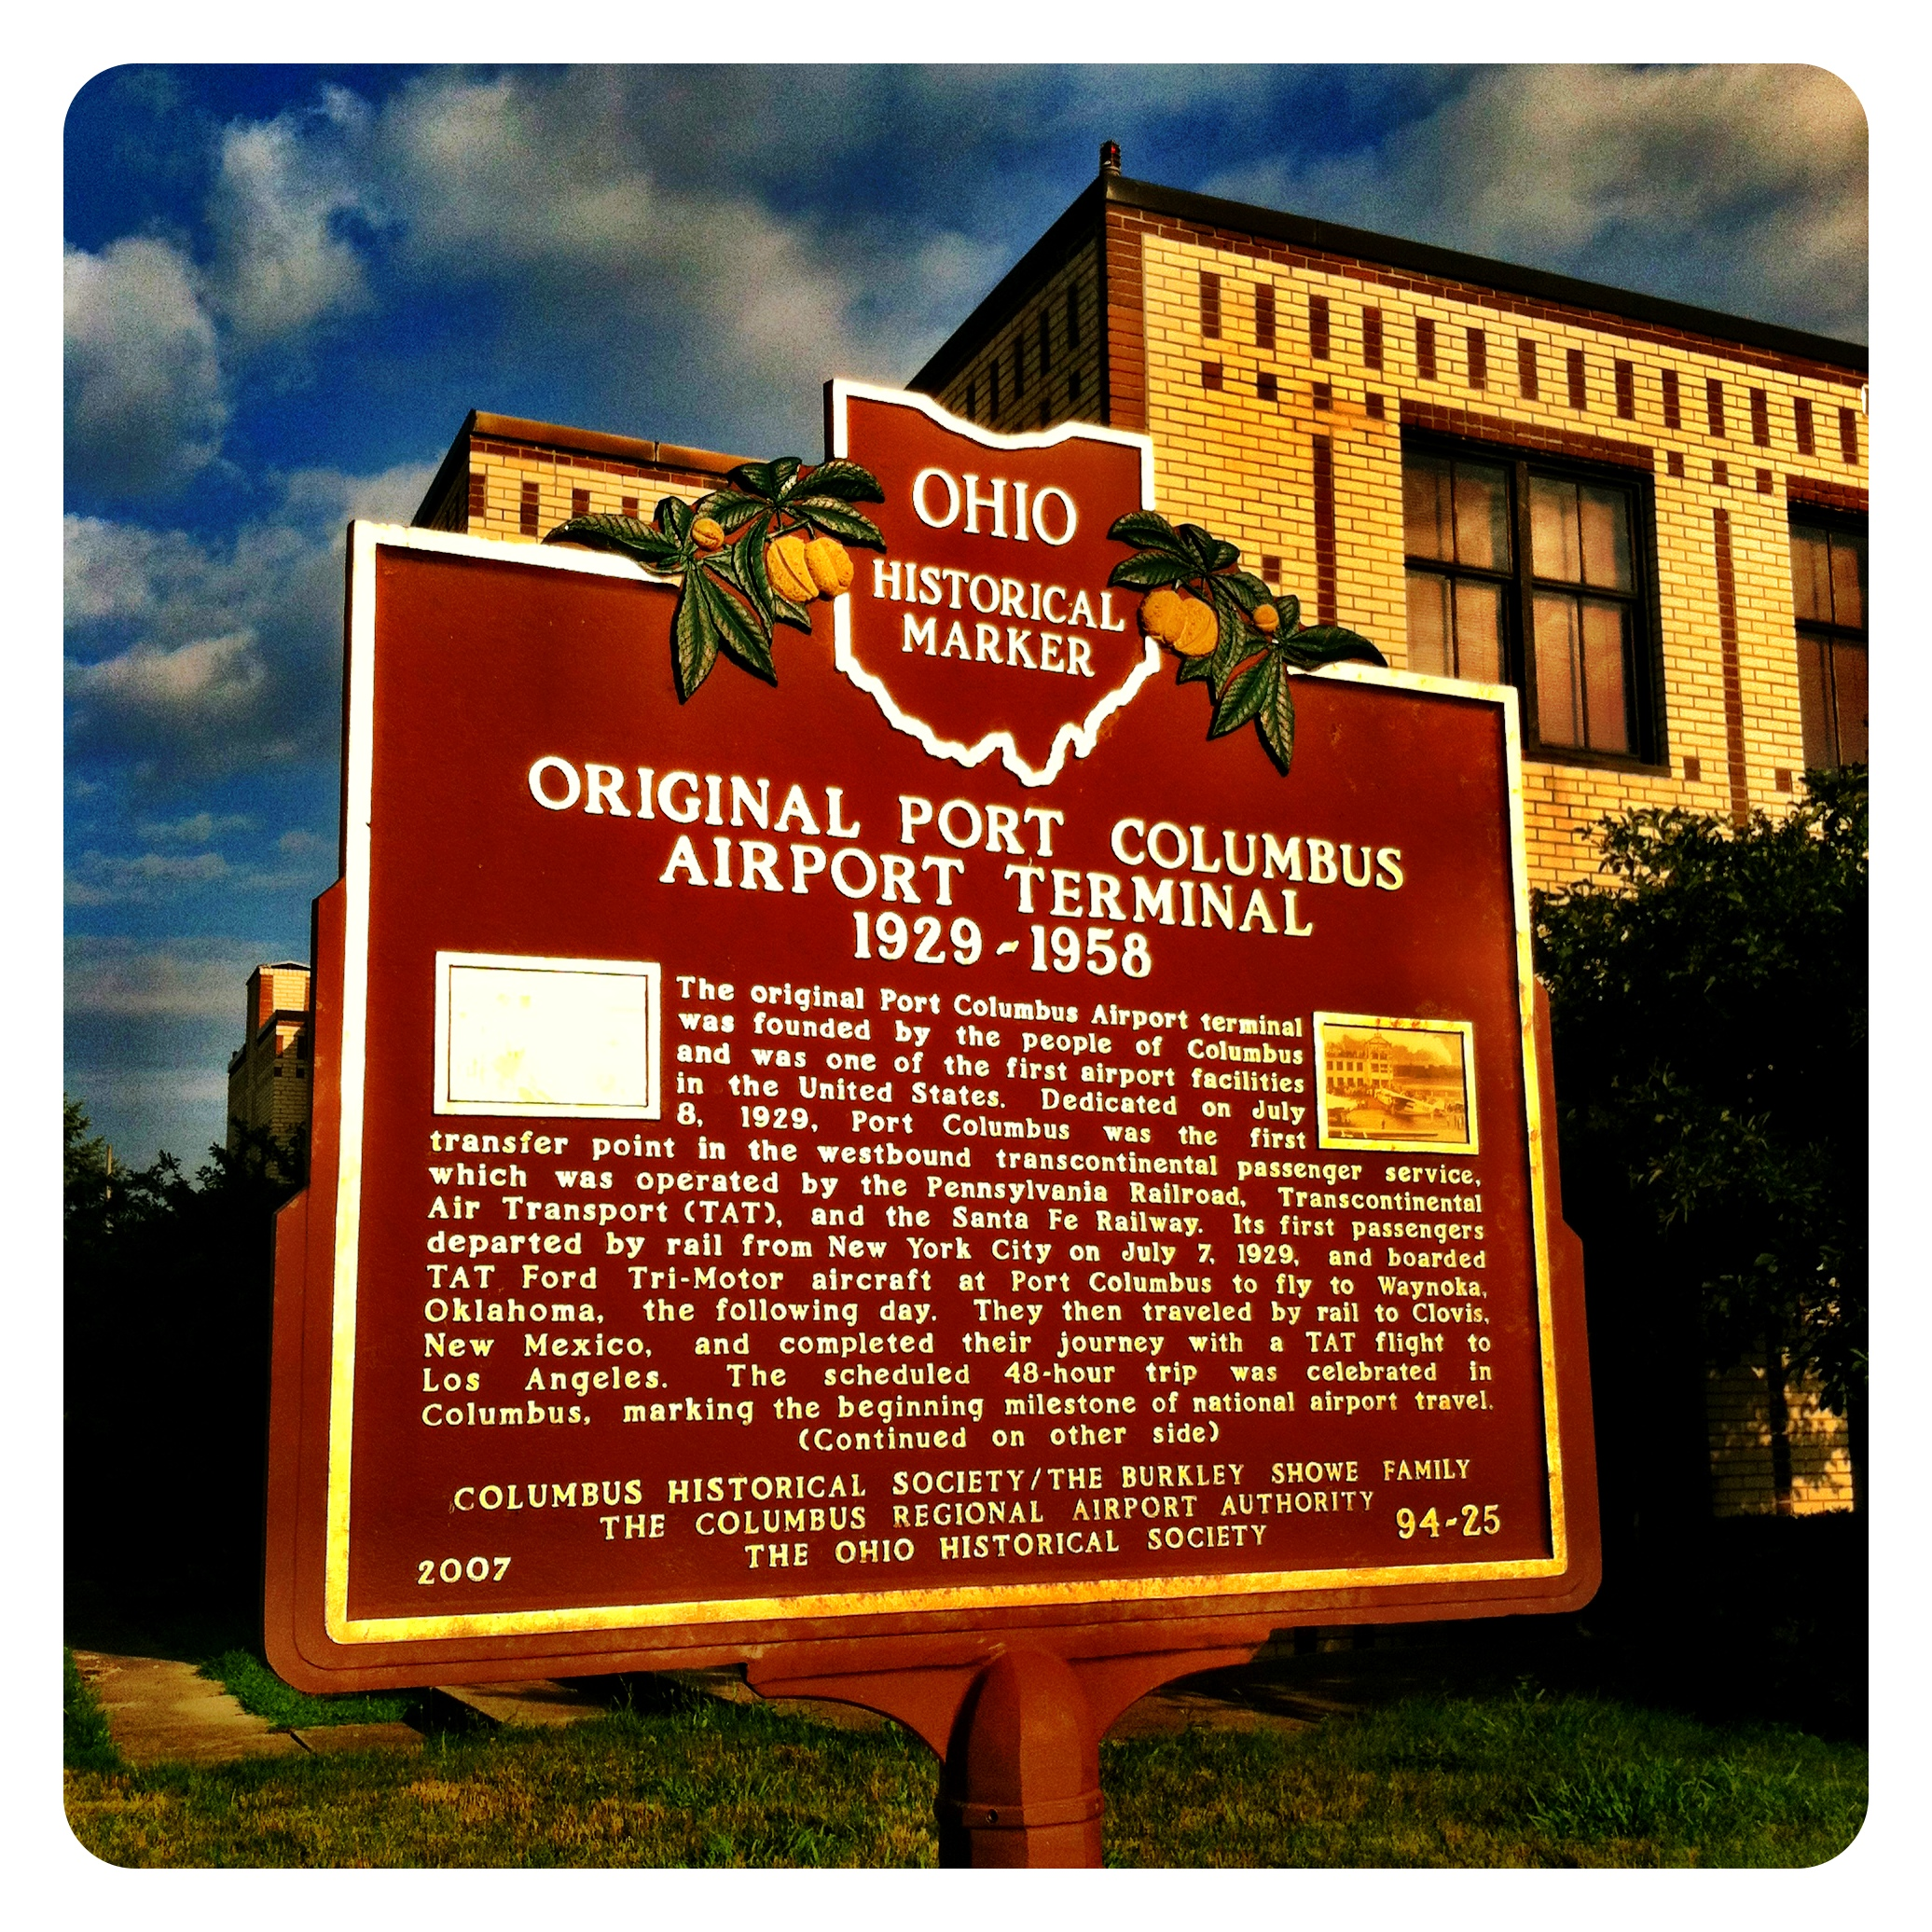 Remarkable Ohio ... Ohio Historical Marker #94-25 Original Port Columbus Terminal